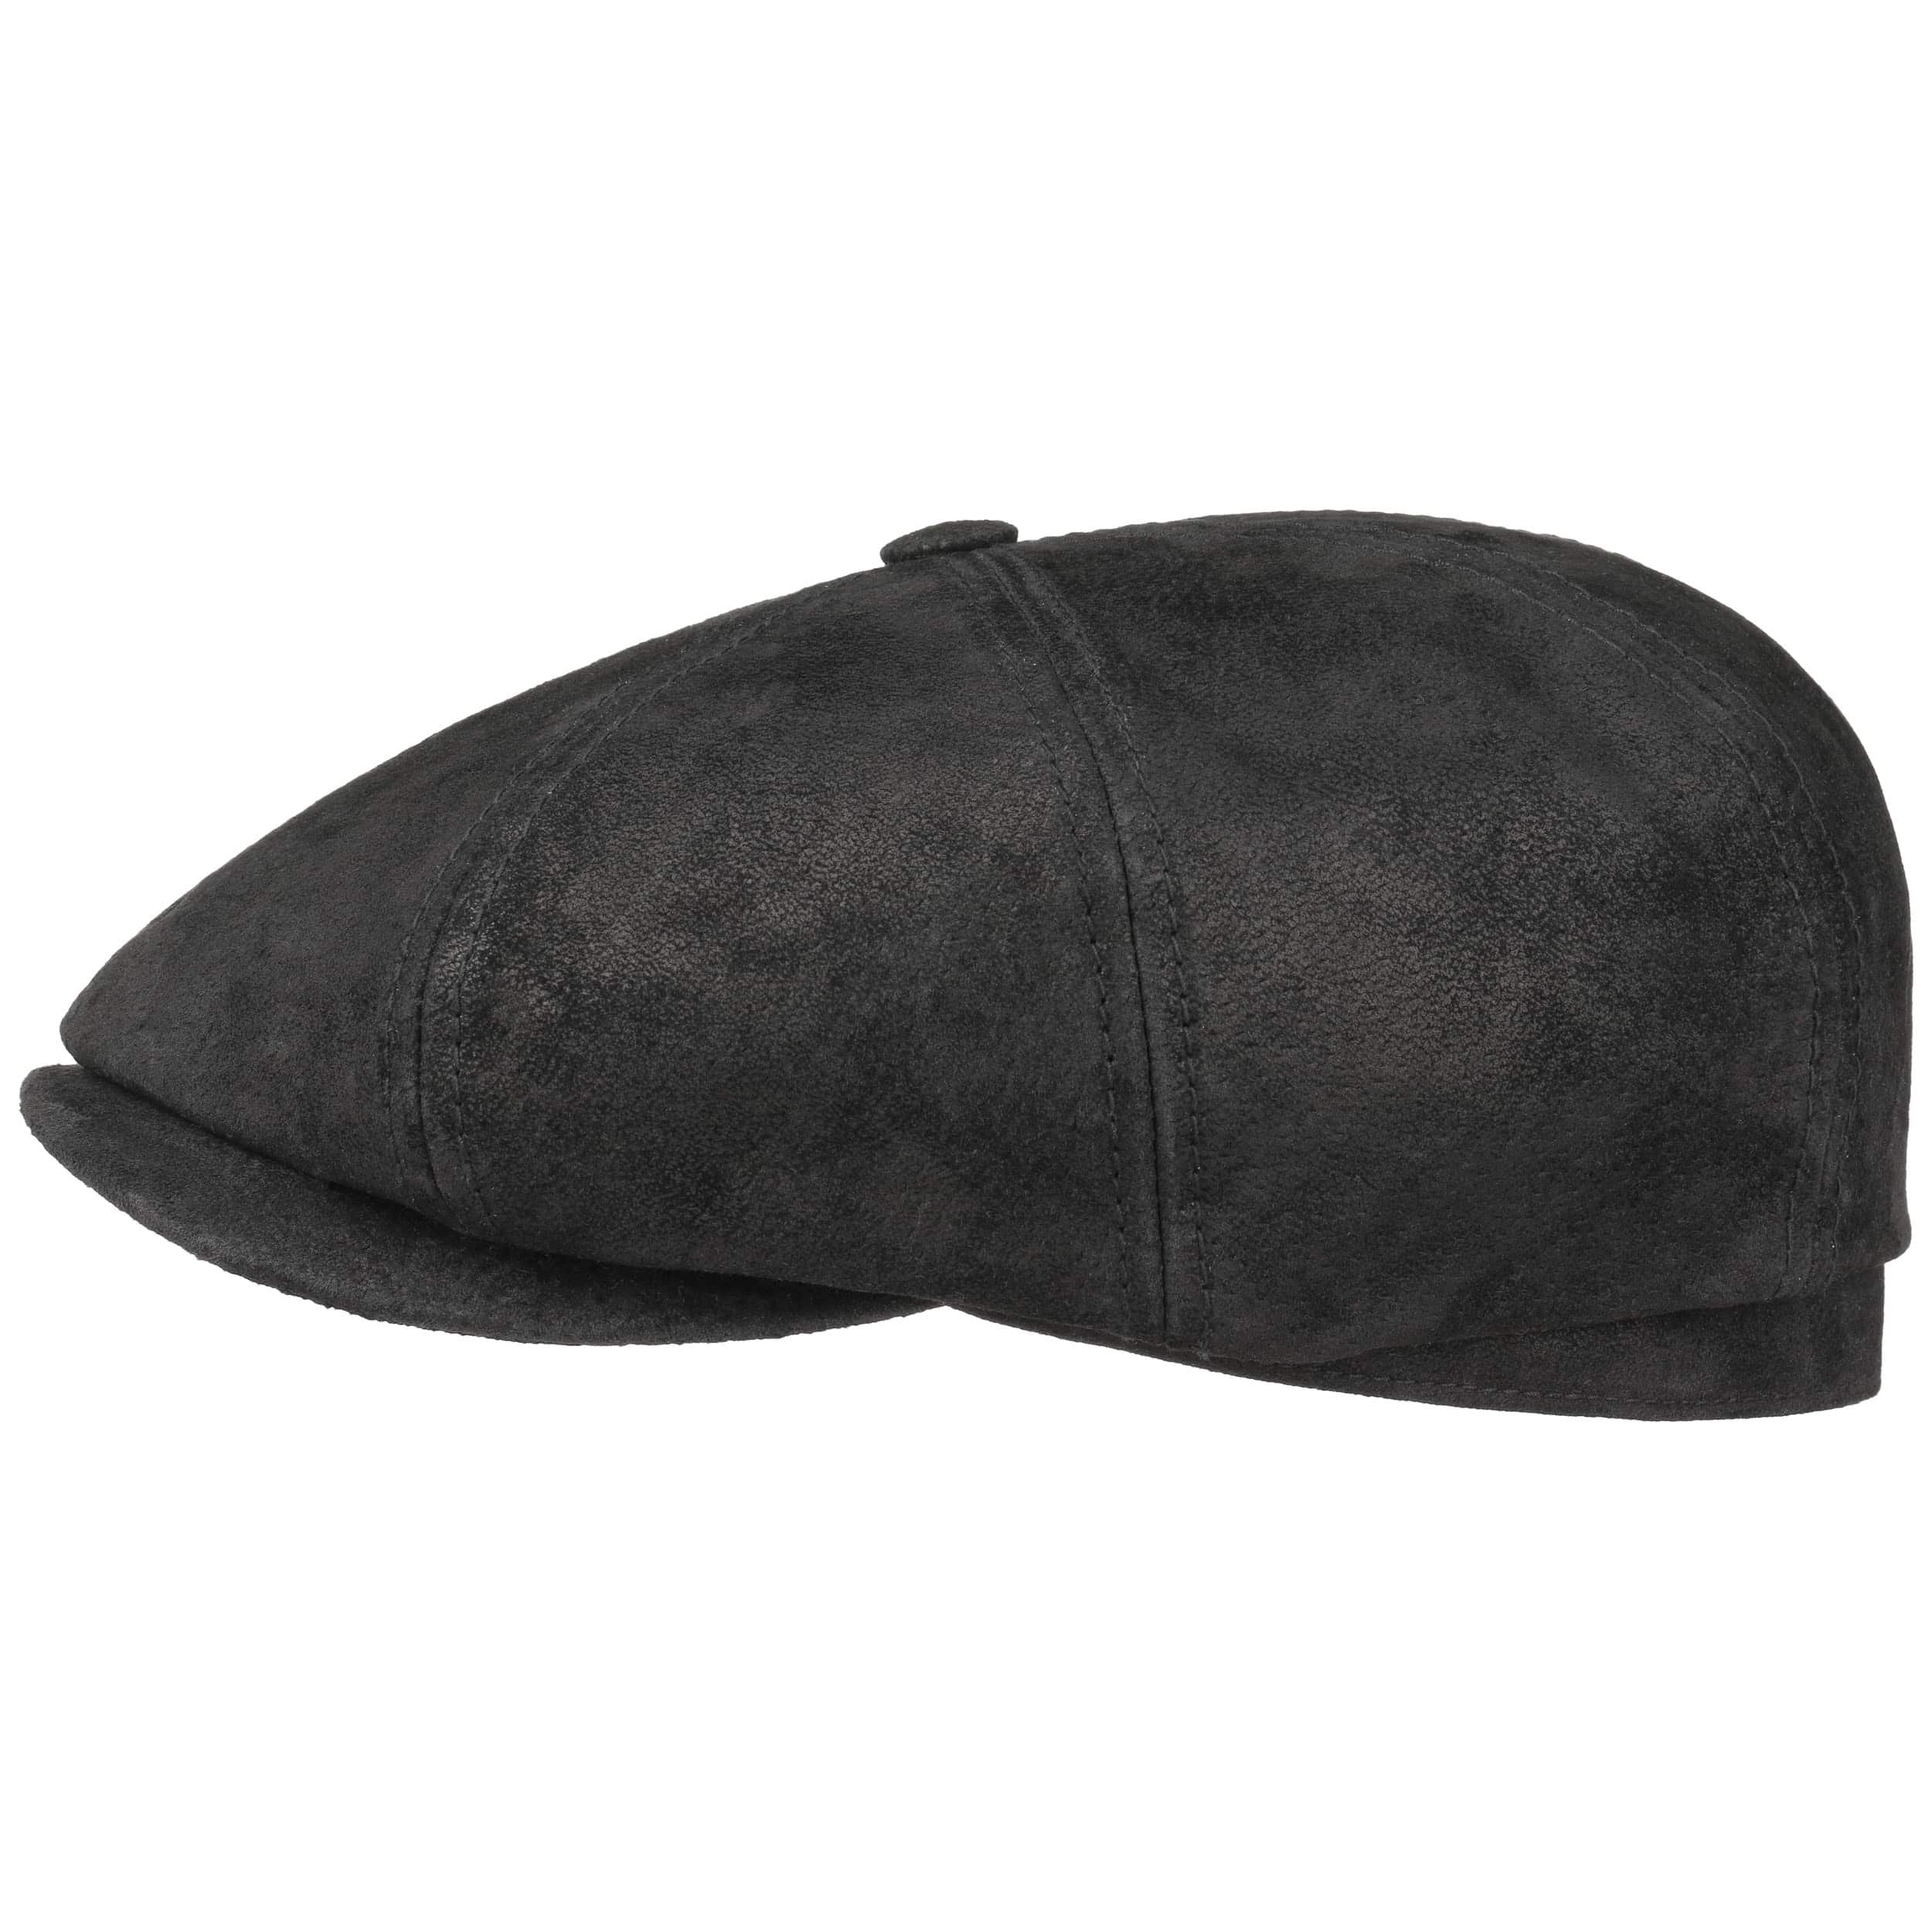 ae42c1a0 Hatteras Pigskin Leather Cap by Stetson - 99,00 €